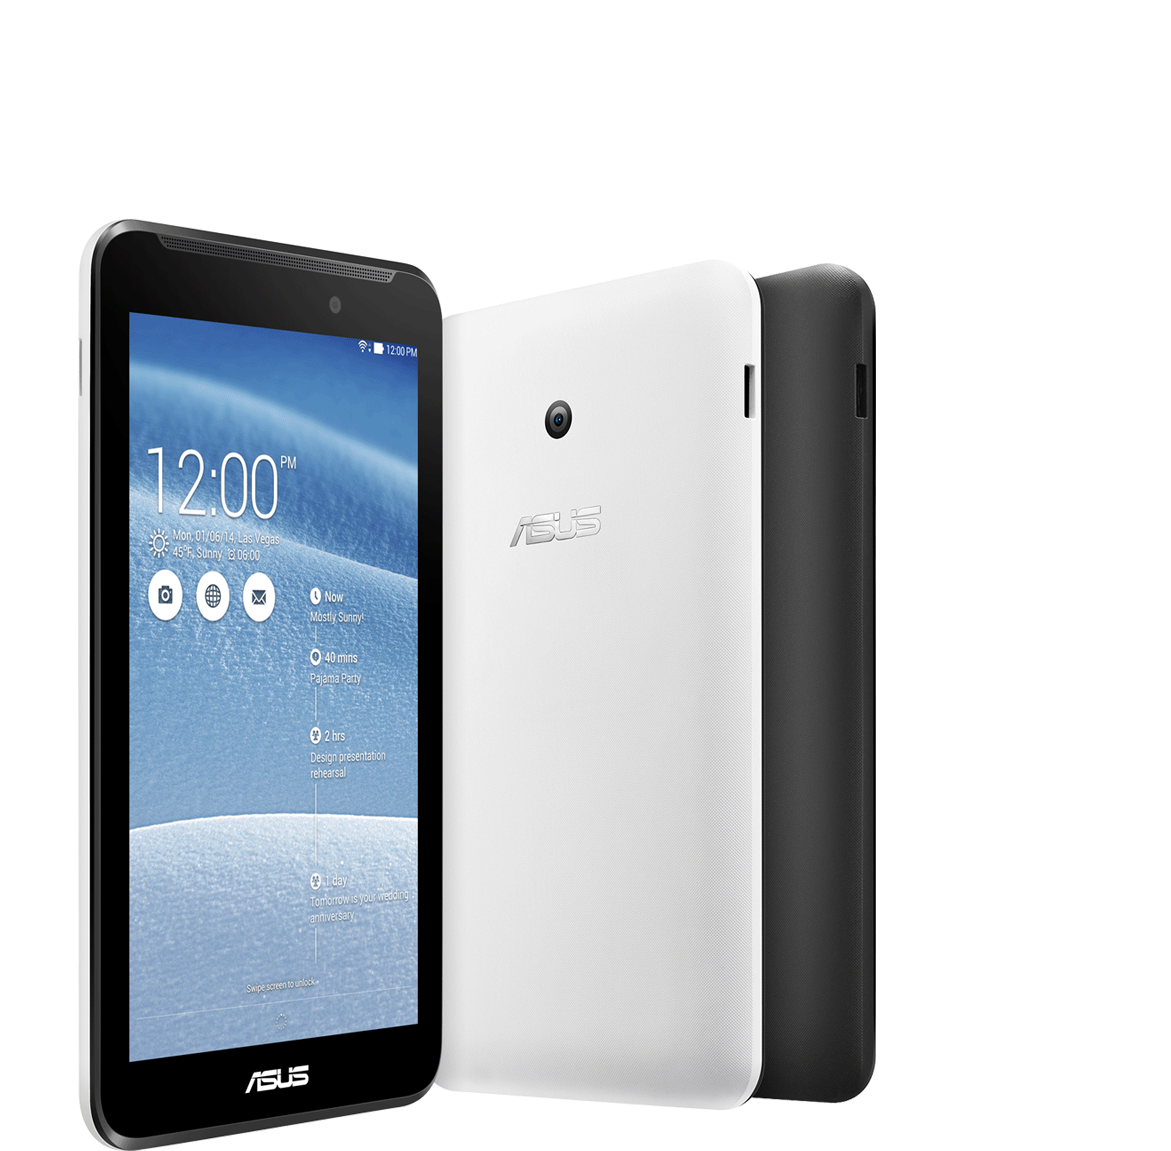 ASUS MeMO Pad 7(ME70CX) | Tablets | ASUS Global